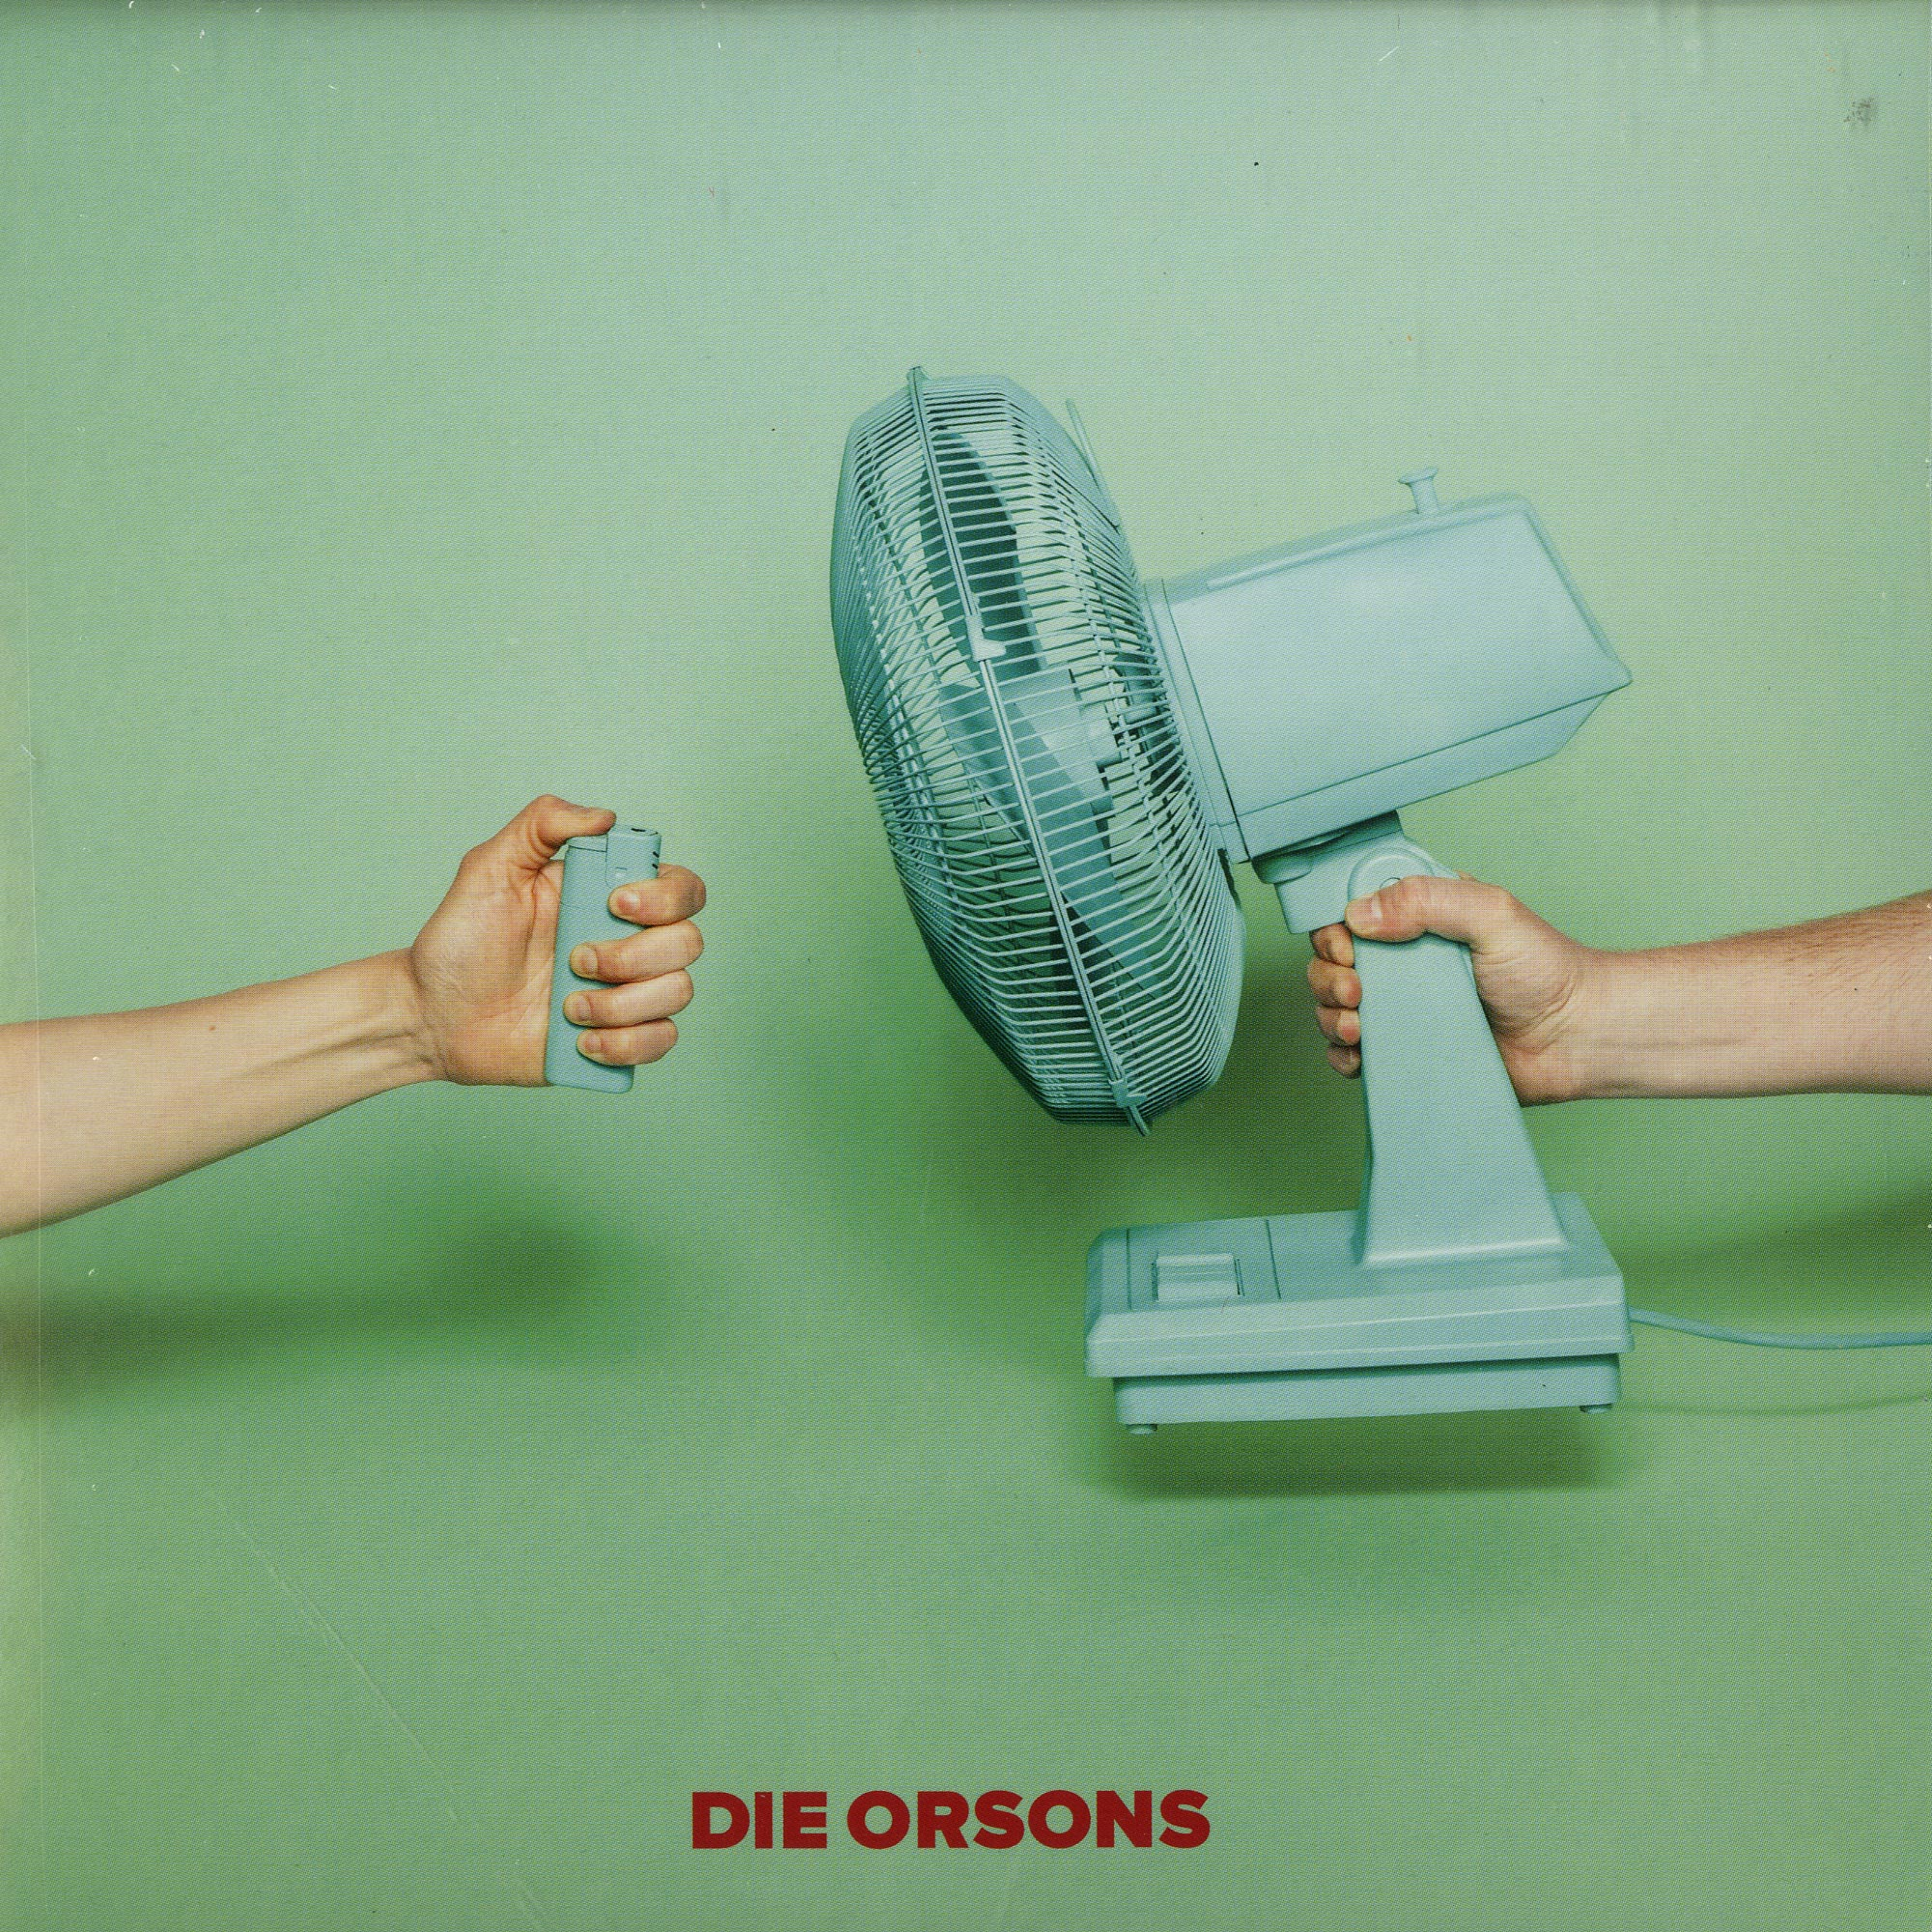 Die Orsons - VENTILATOR